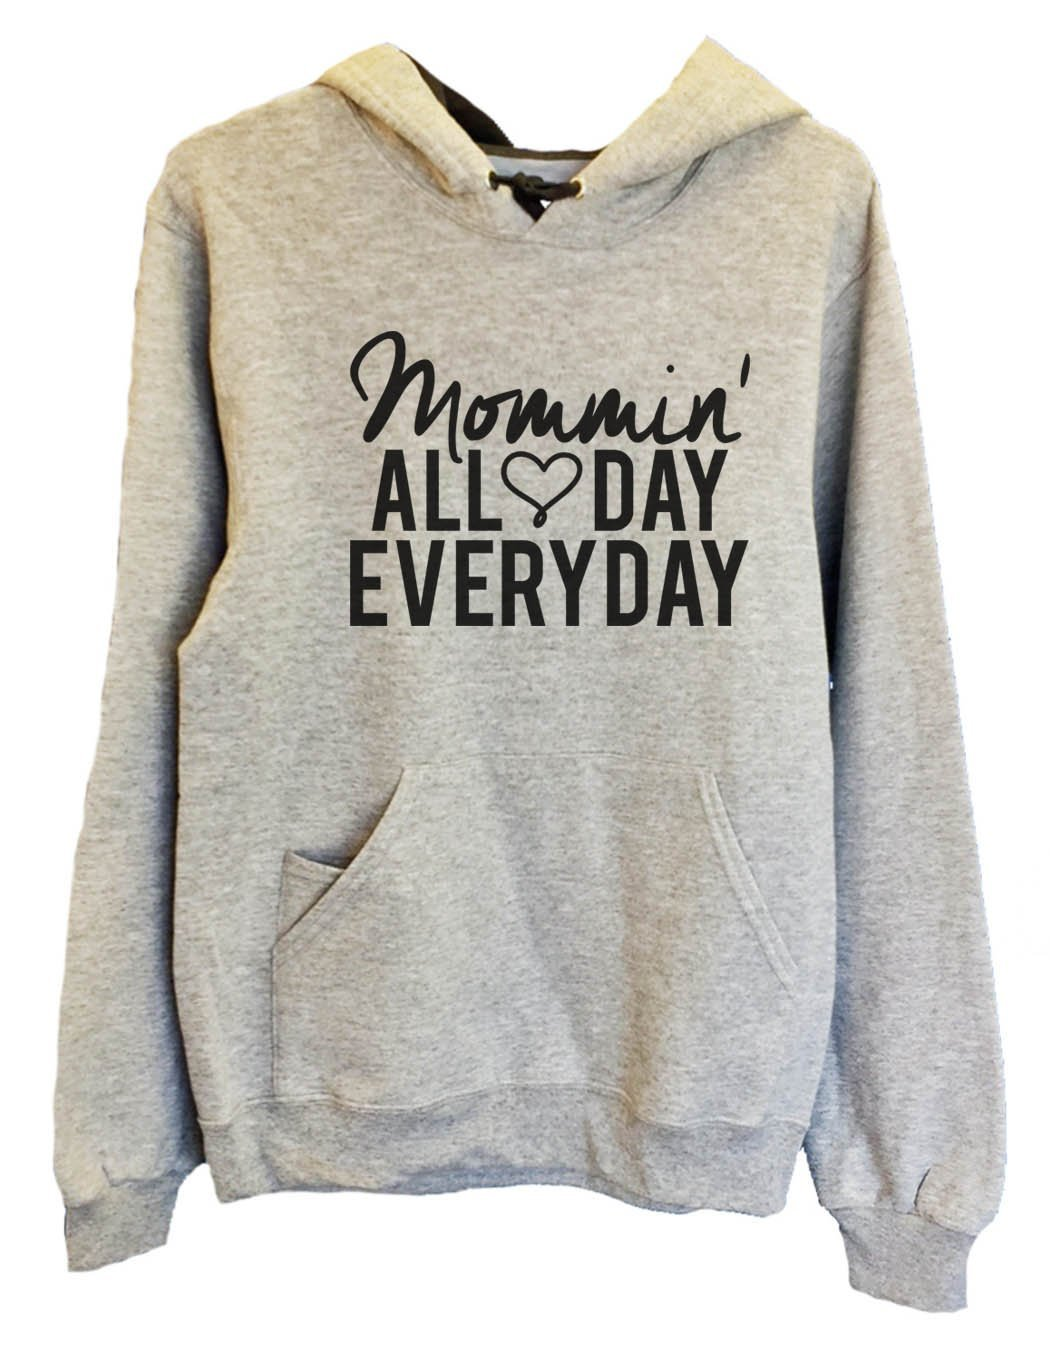 UNISEX HOODIE - Mommin' All Day Every Day - FUNNY MENS AND WOMENS HOODED SWEATSHIRTS - 2143 Funny Shirt Small / Heather Grey